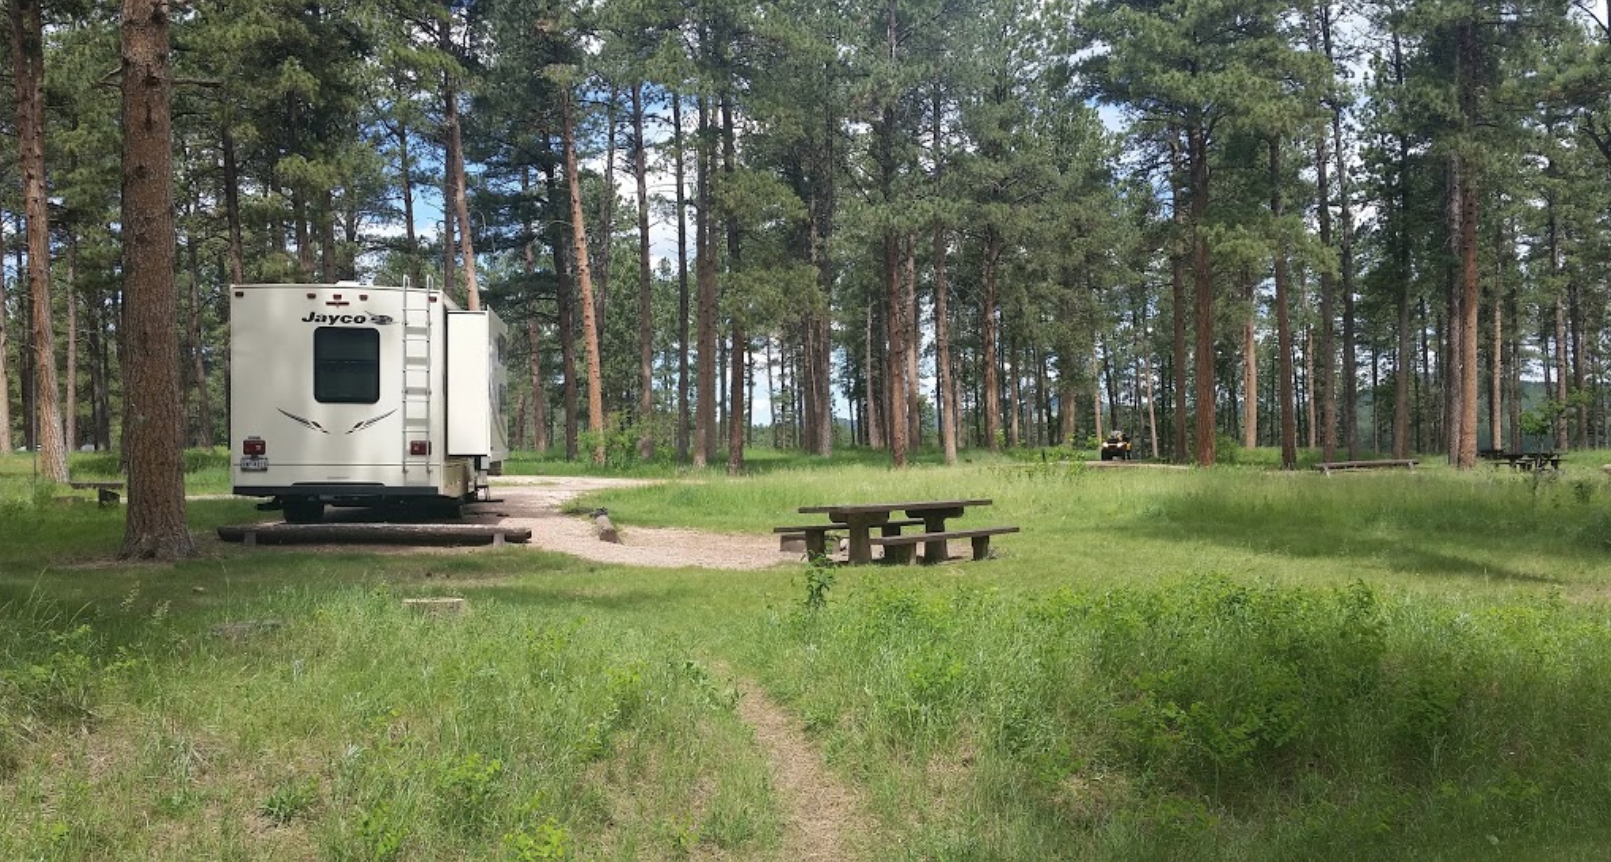 camp overnight at sheridan lake in a pine tree campground